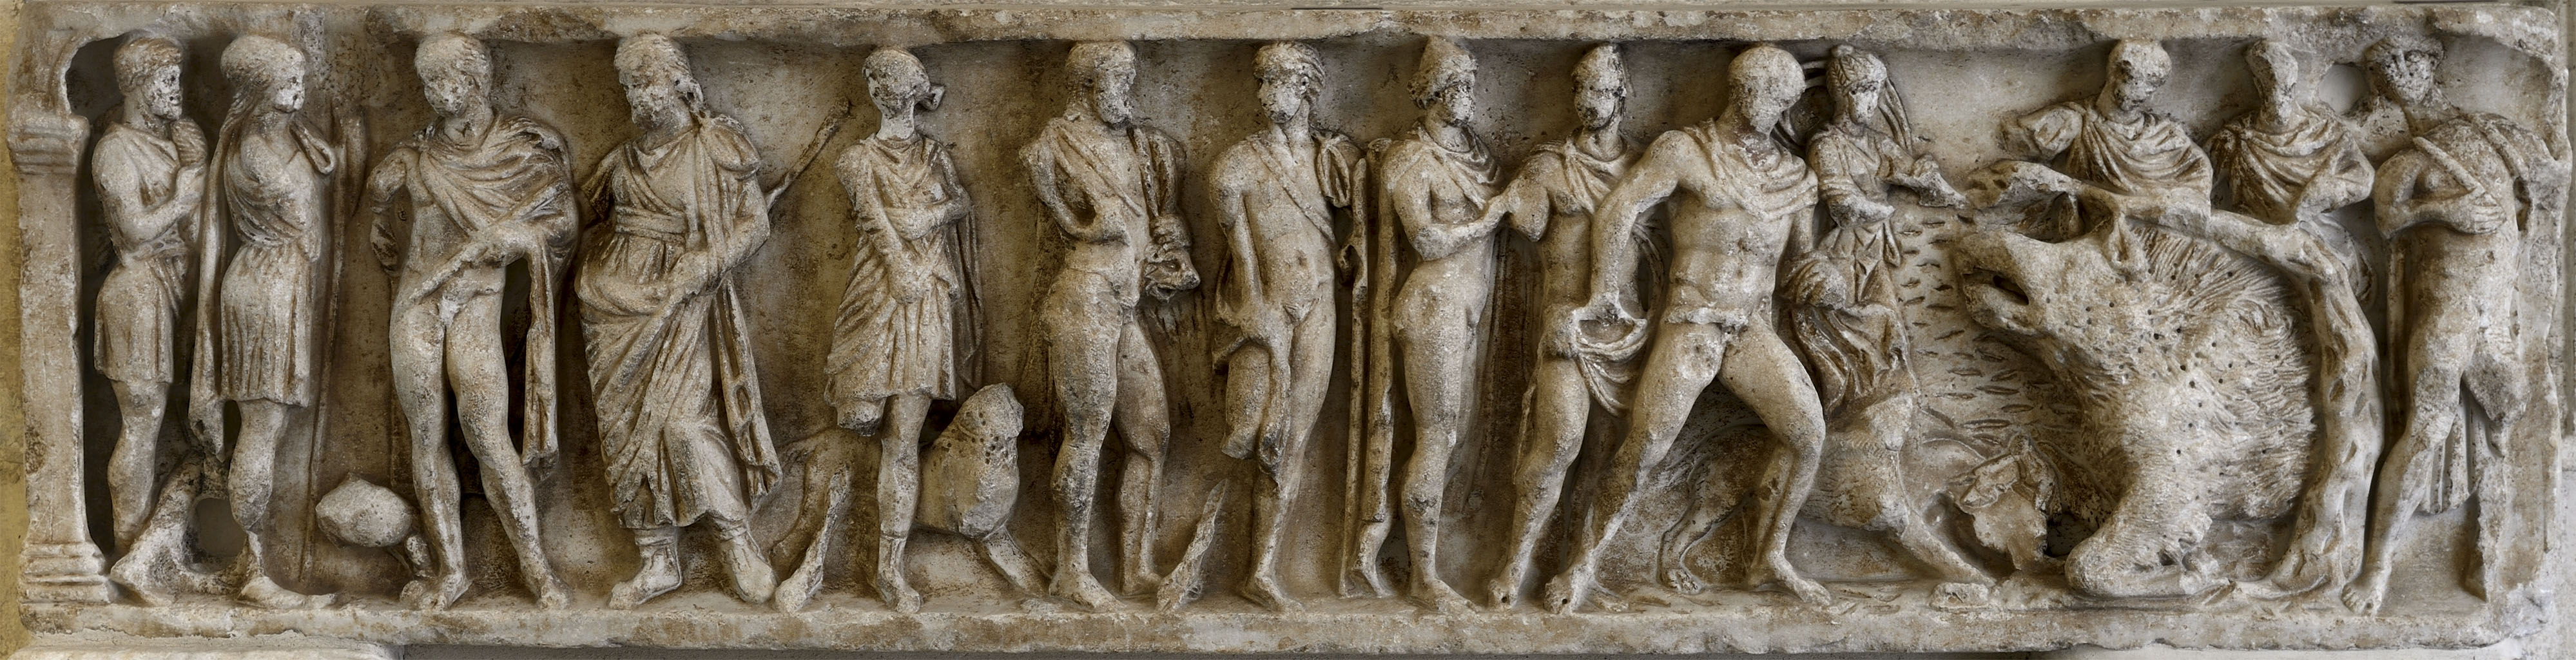 Sarcophagus with a scene of the Calydonian Hunt. The front panel. Marble. Second half of the 2nd cent. CE.  Rome, Capitoline Museums